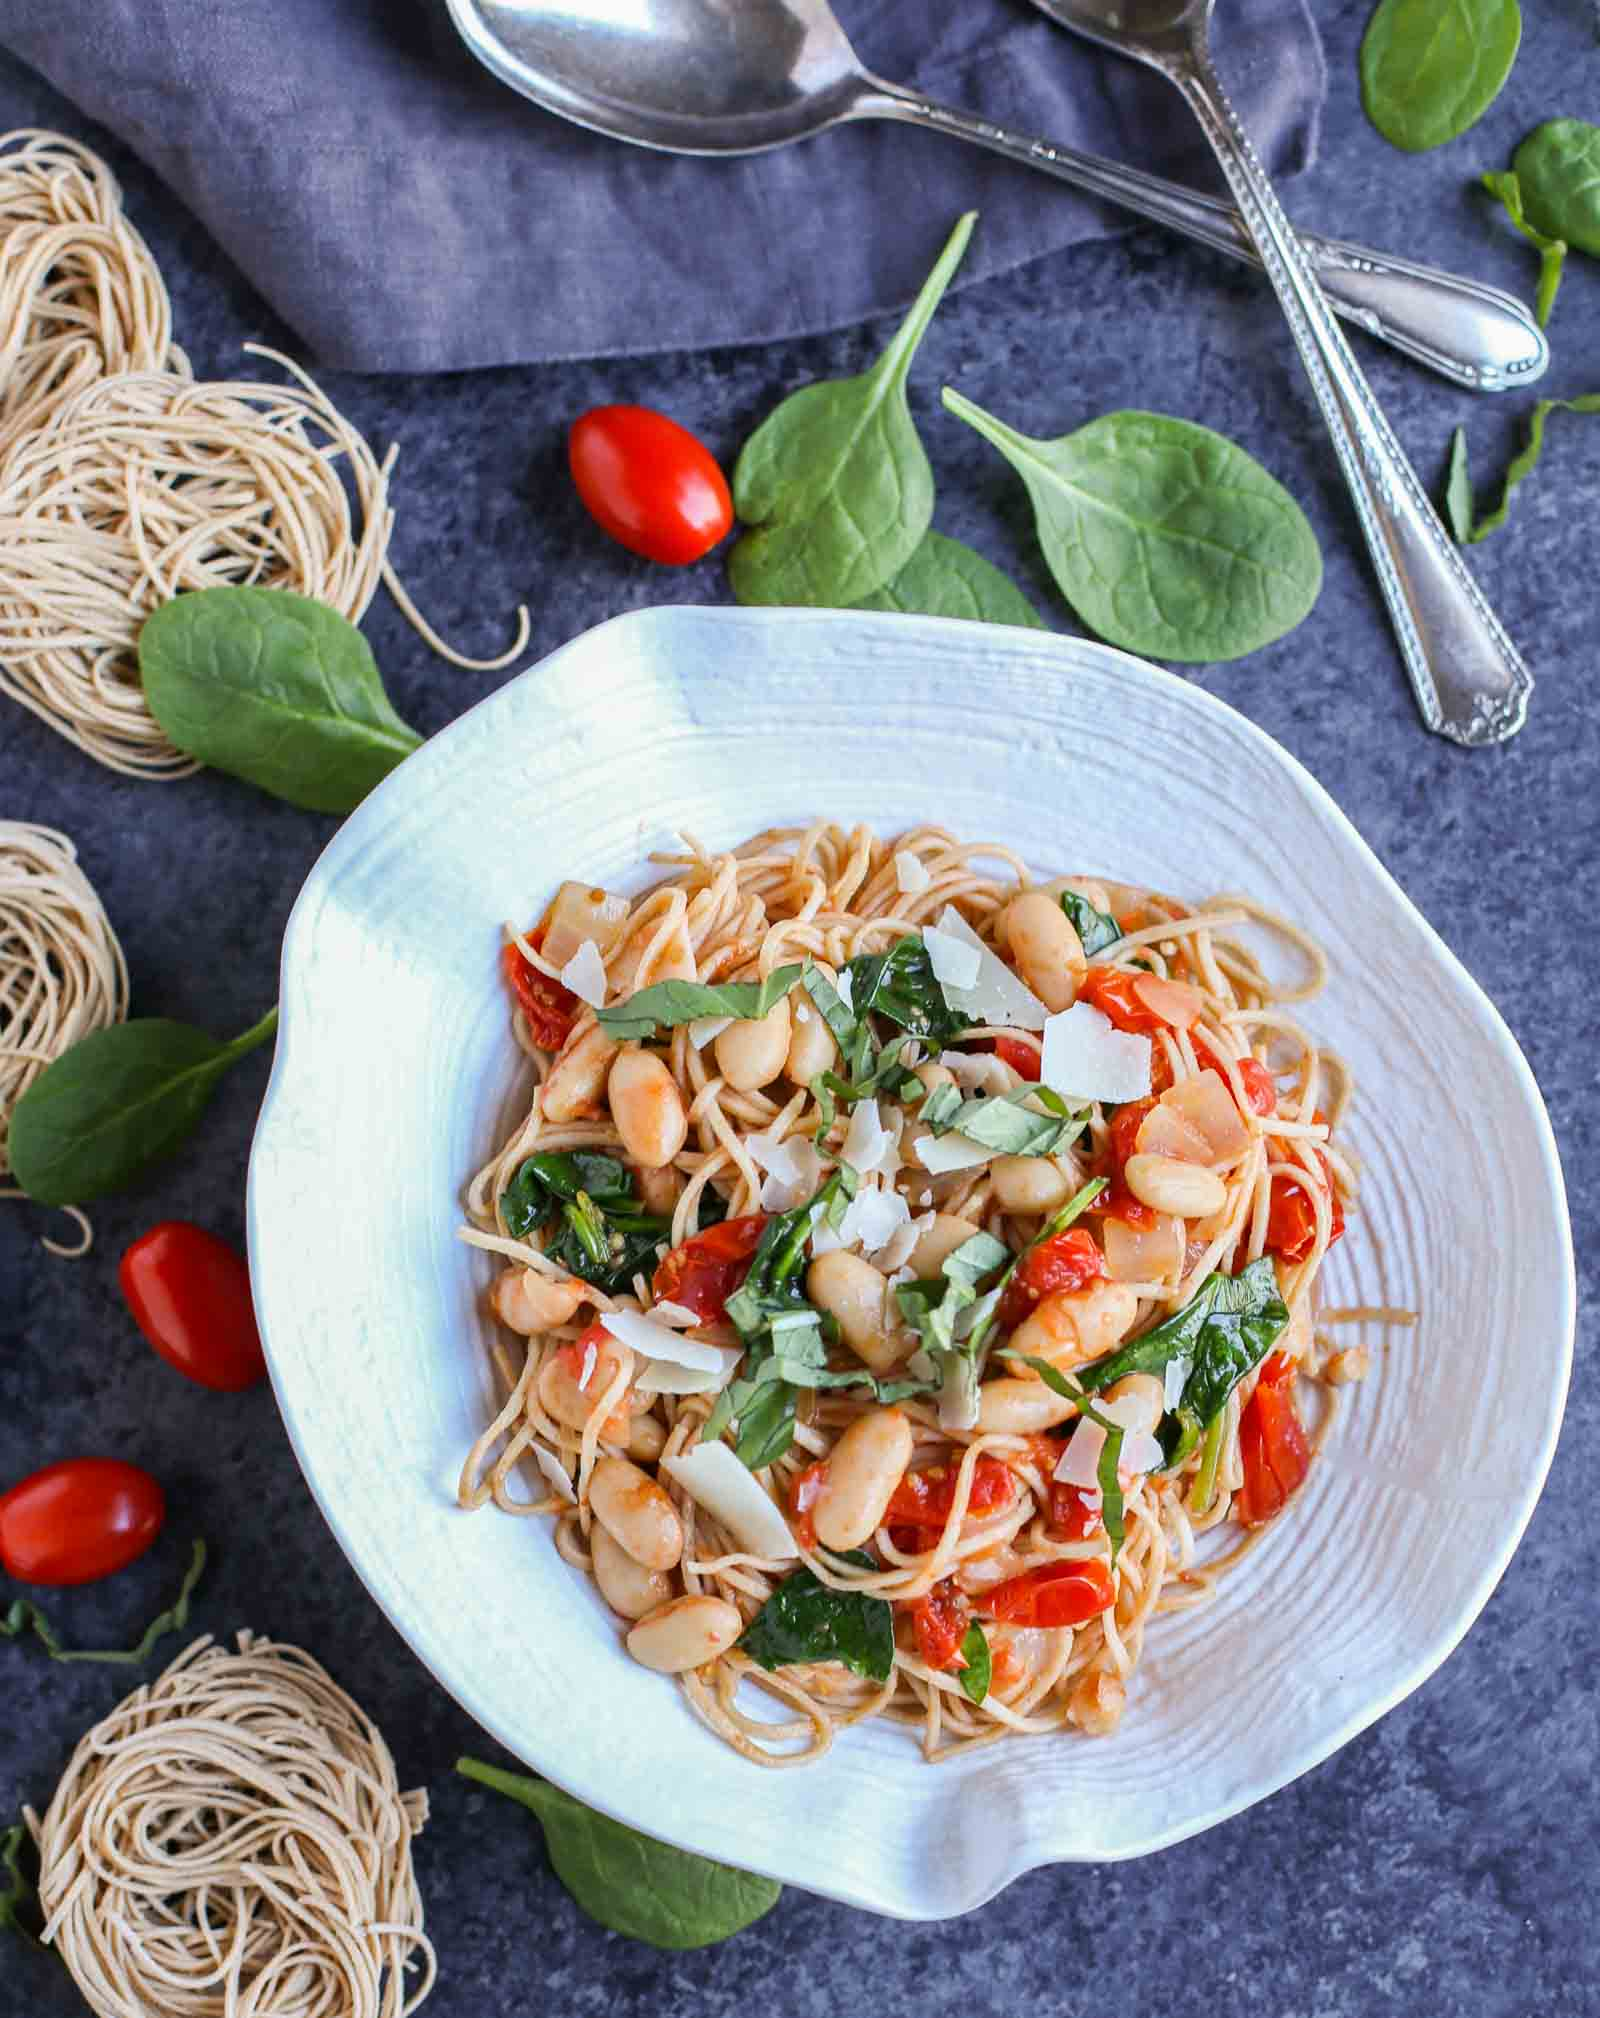 ... , White Beans, and Spinach with Whole Wheat Pasta - The Pasta Shoppe